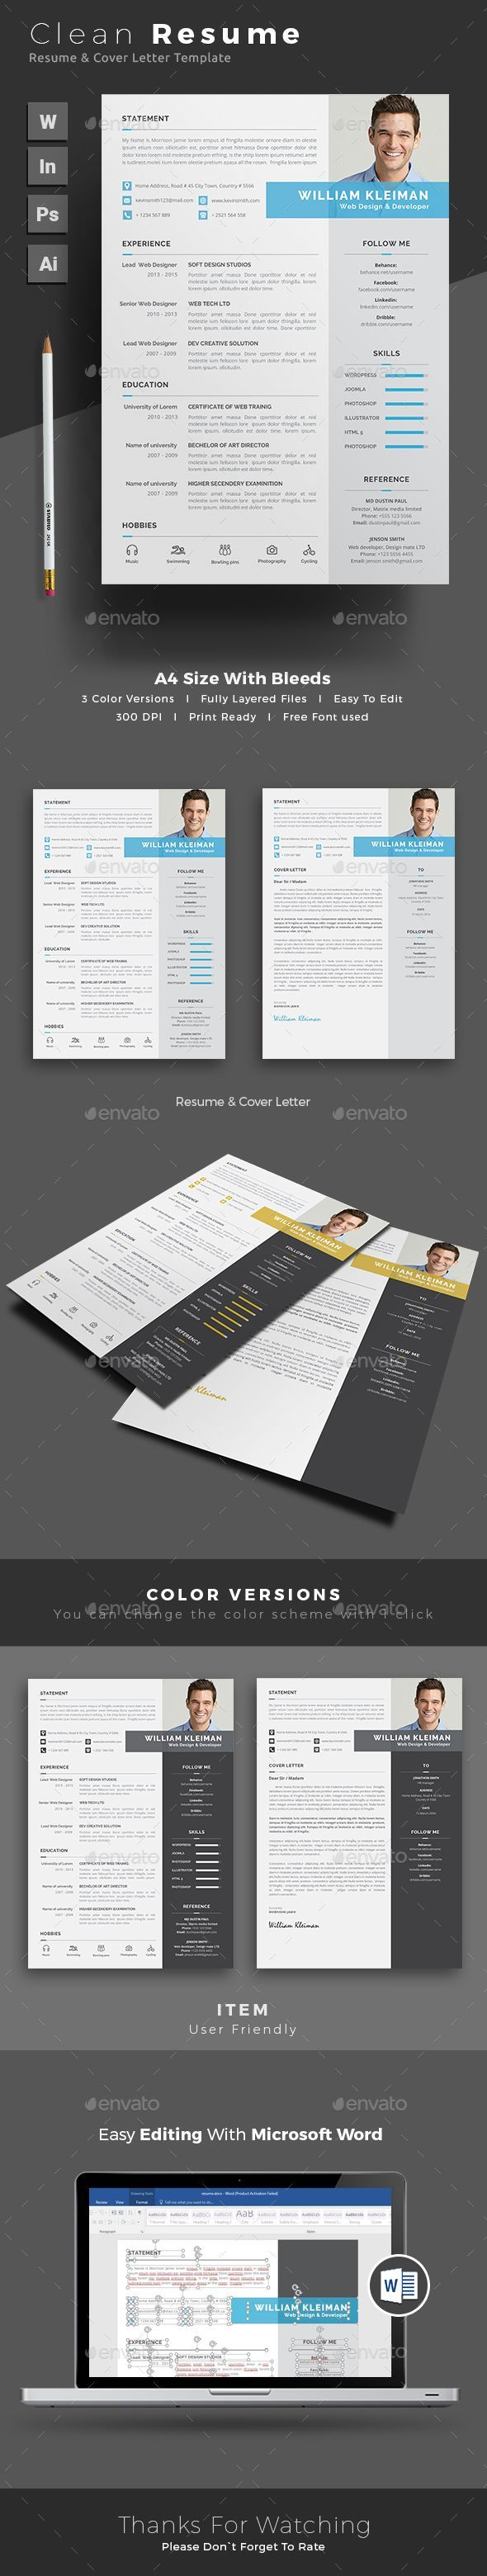 Free Microsoft Word Flyer Templates Resume Template Psd Indesign Indd Ai Illustrator Ms Word  Office .